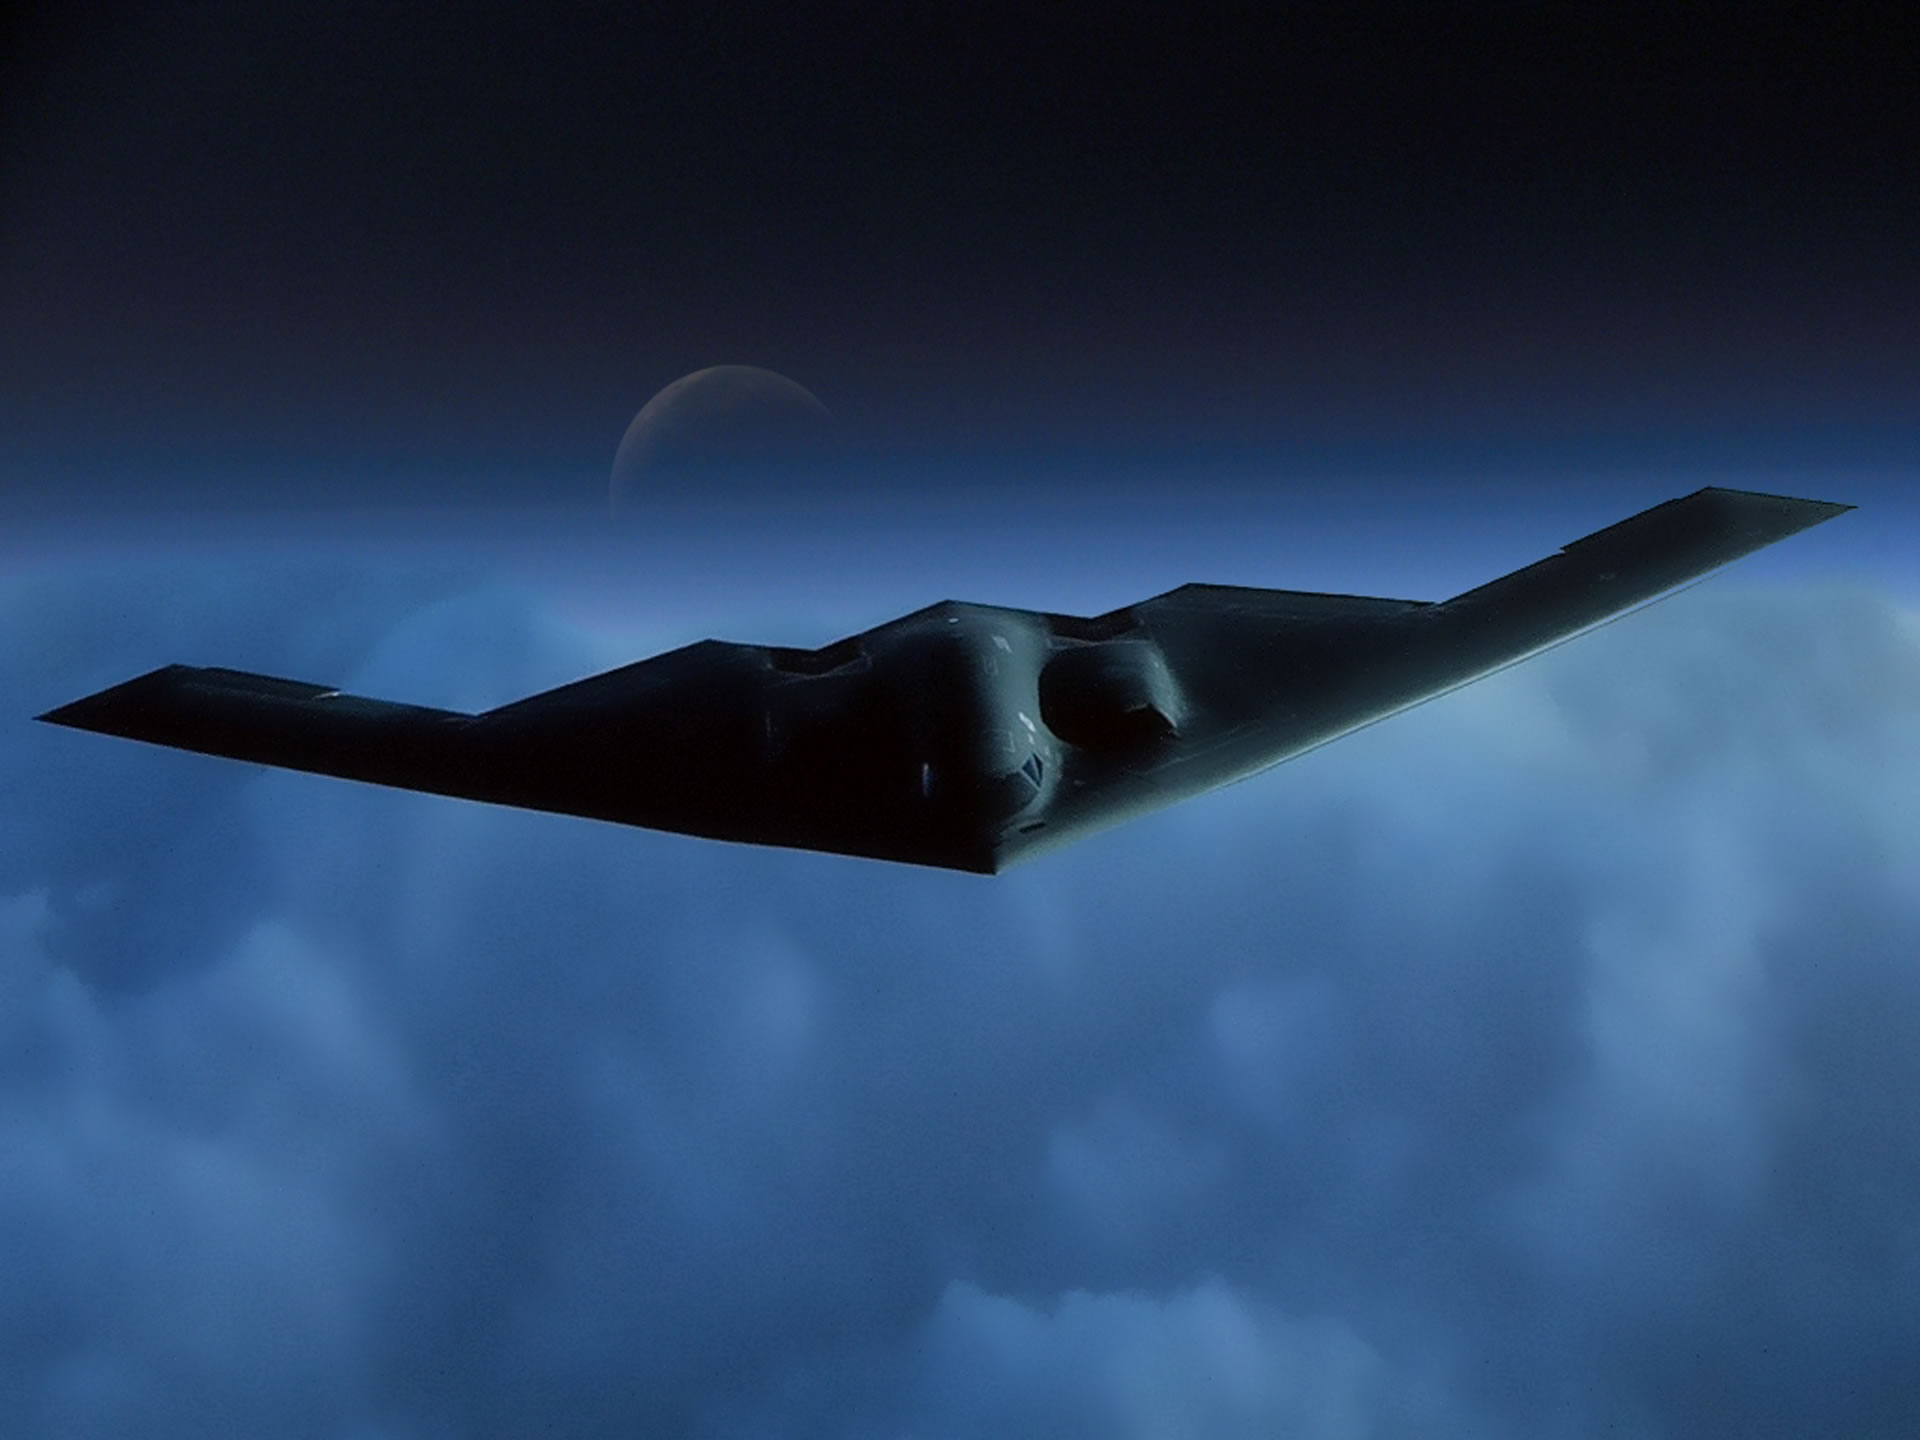 Stealth Bomber Wallpaper Images amp Pictures   Becuo 1920x1440